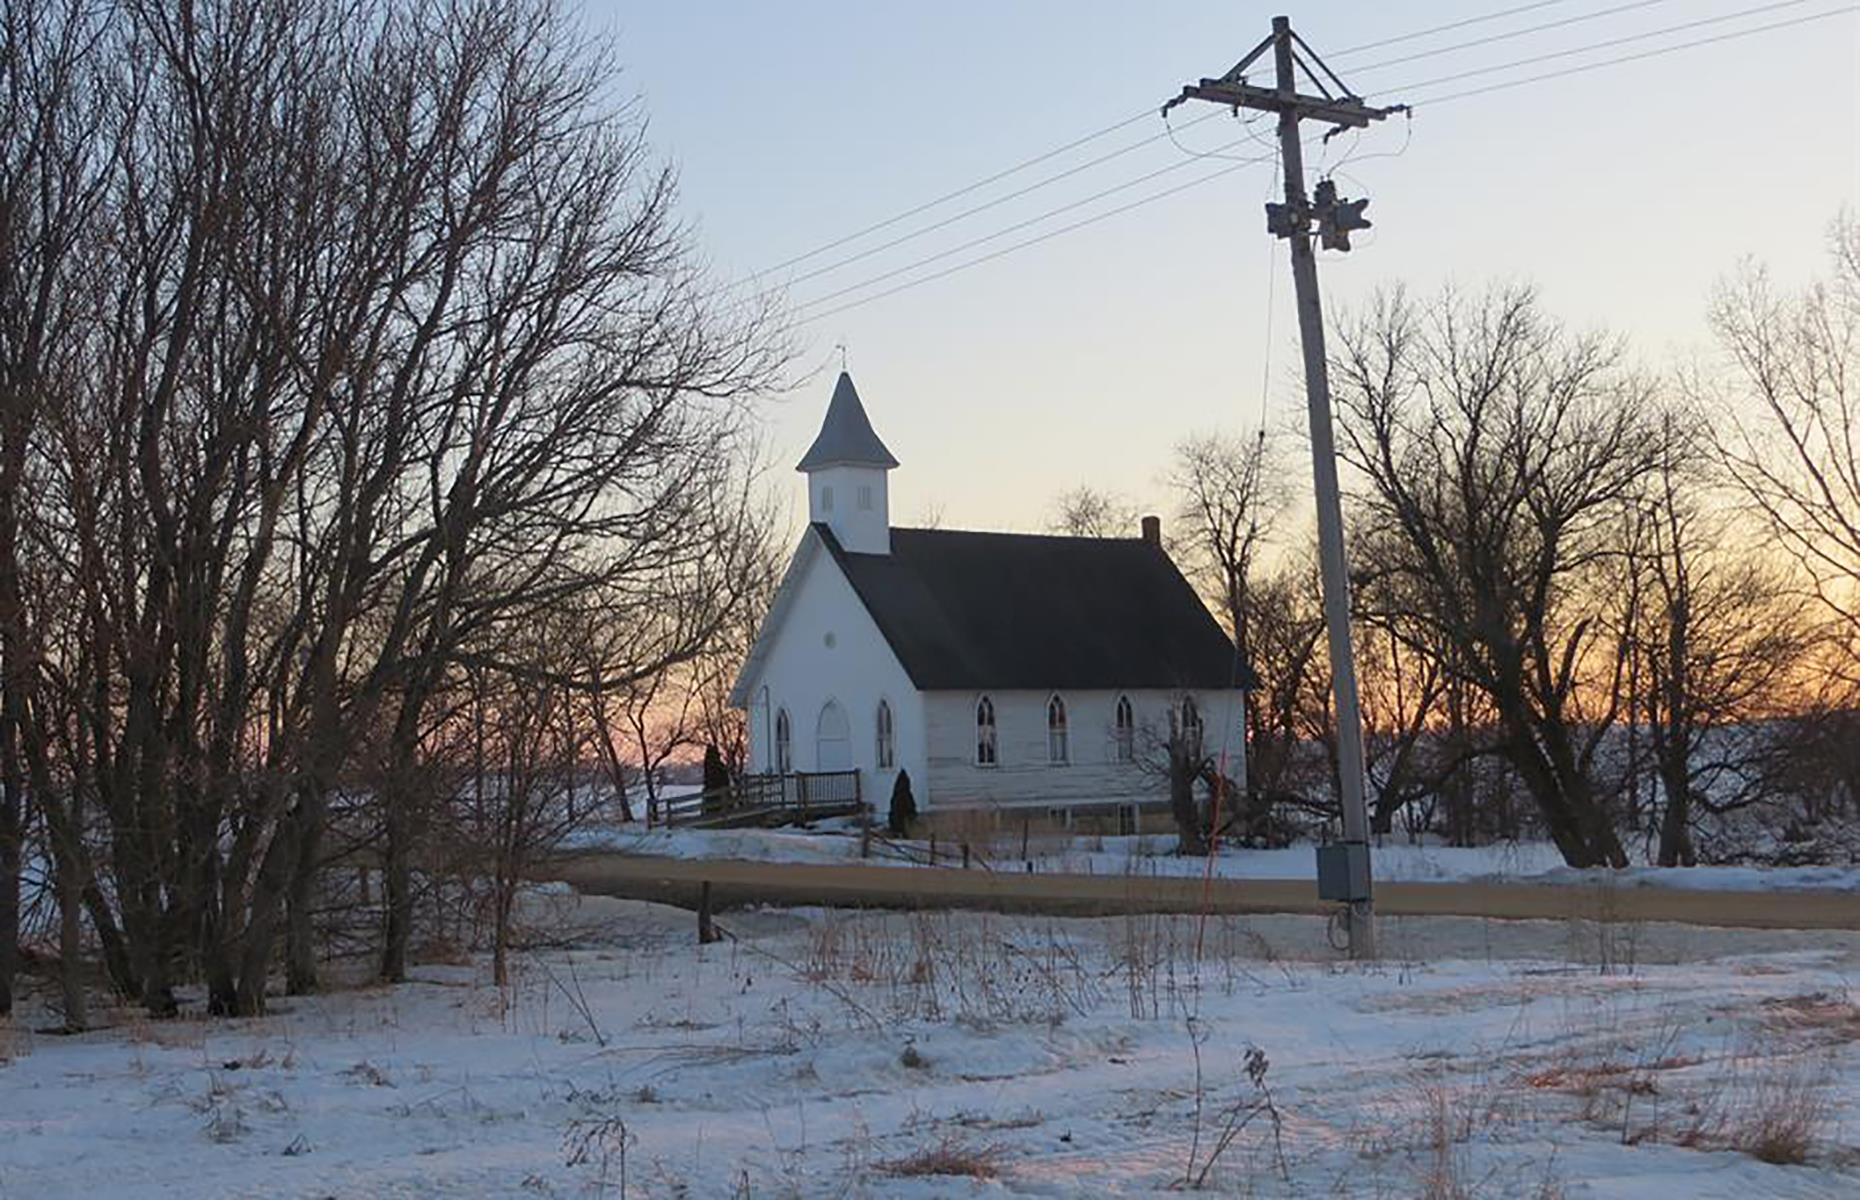 Slide 30 of 101: This little ghost town is tucked away in eastern Iowa, just off busy Highway 64. It's thought that the town leaked residents after much of the property here was bought up by a large commercial dairy in the 1960s.